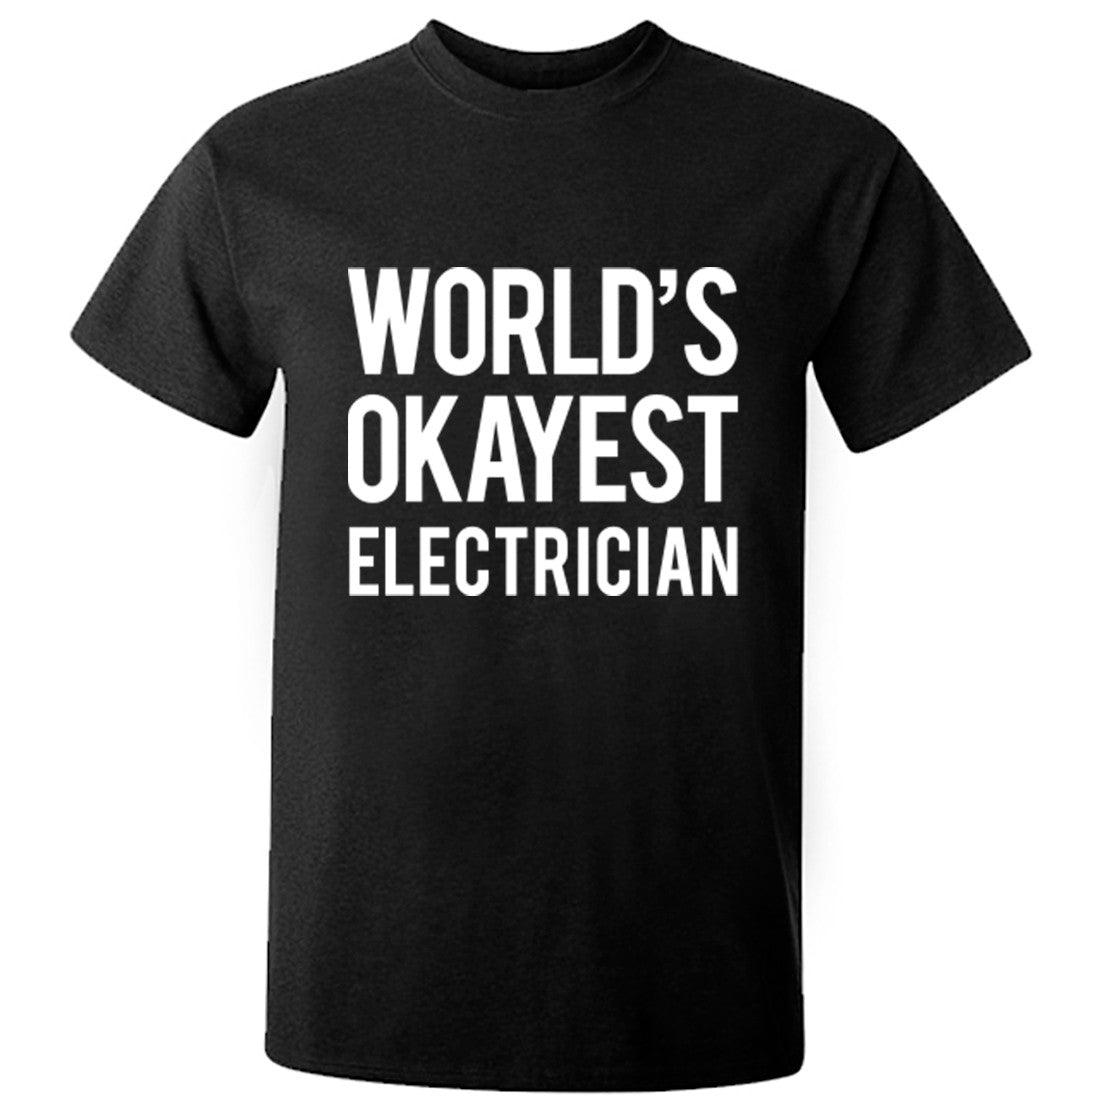 Worlds Okayest Electrician Unisex Fit T-Shirt K0506